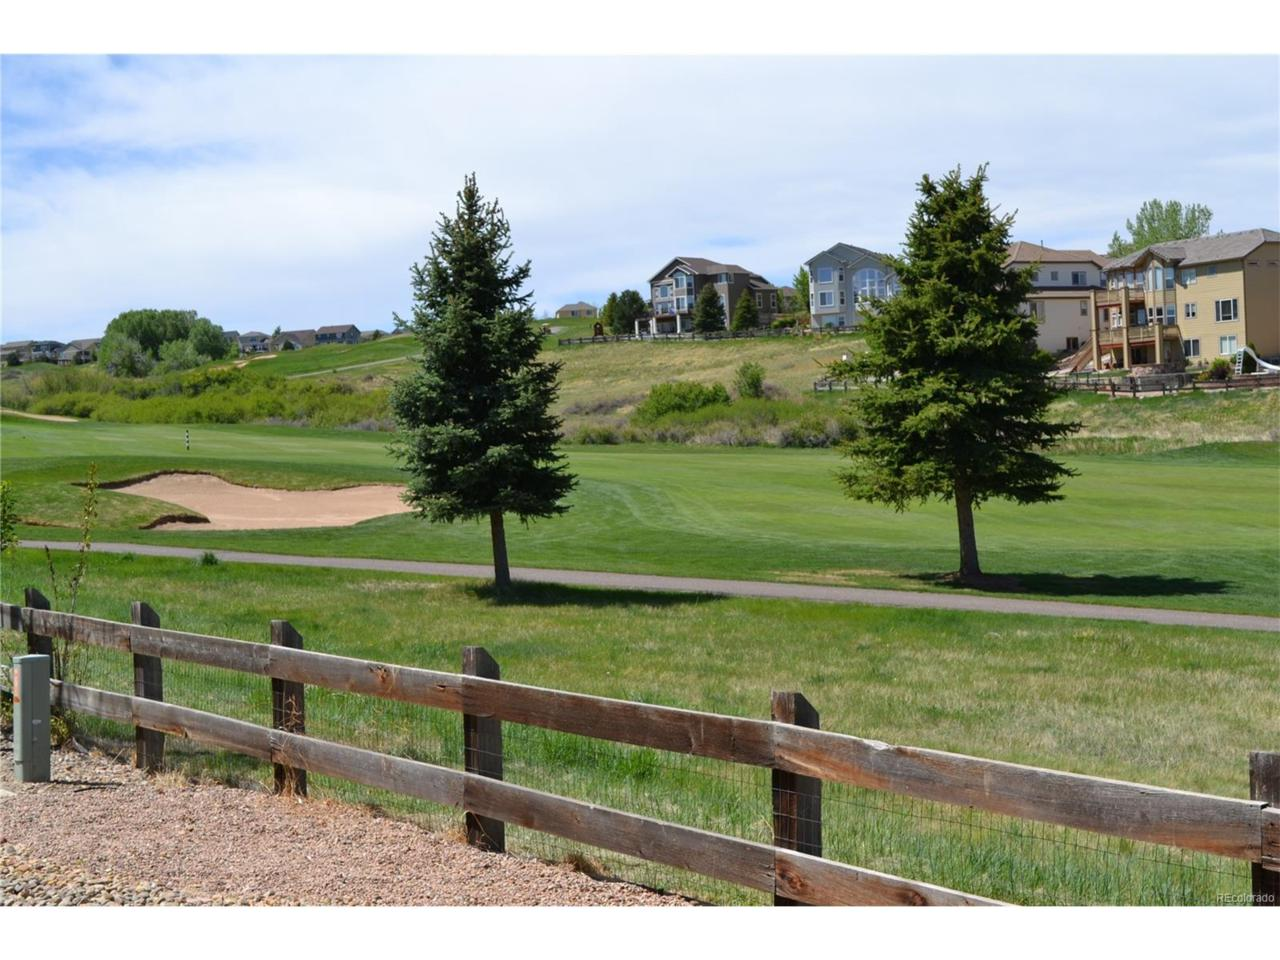 11405 S Fountain Hills Street, Parker, CO 80138 (MLS #3492031) :: 8z Real Estate